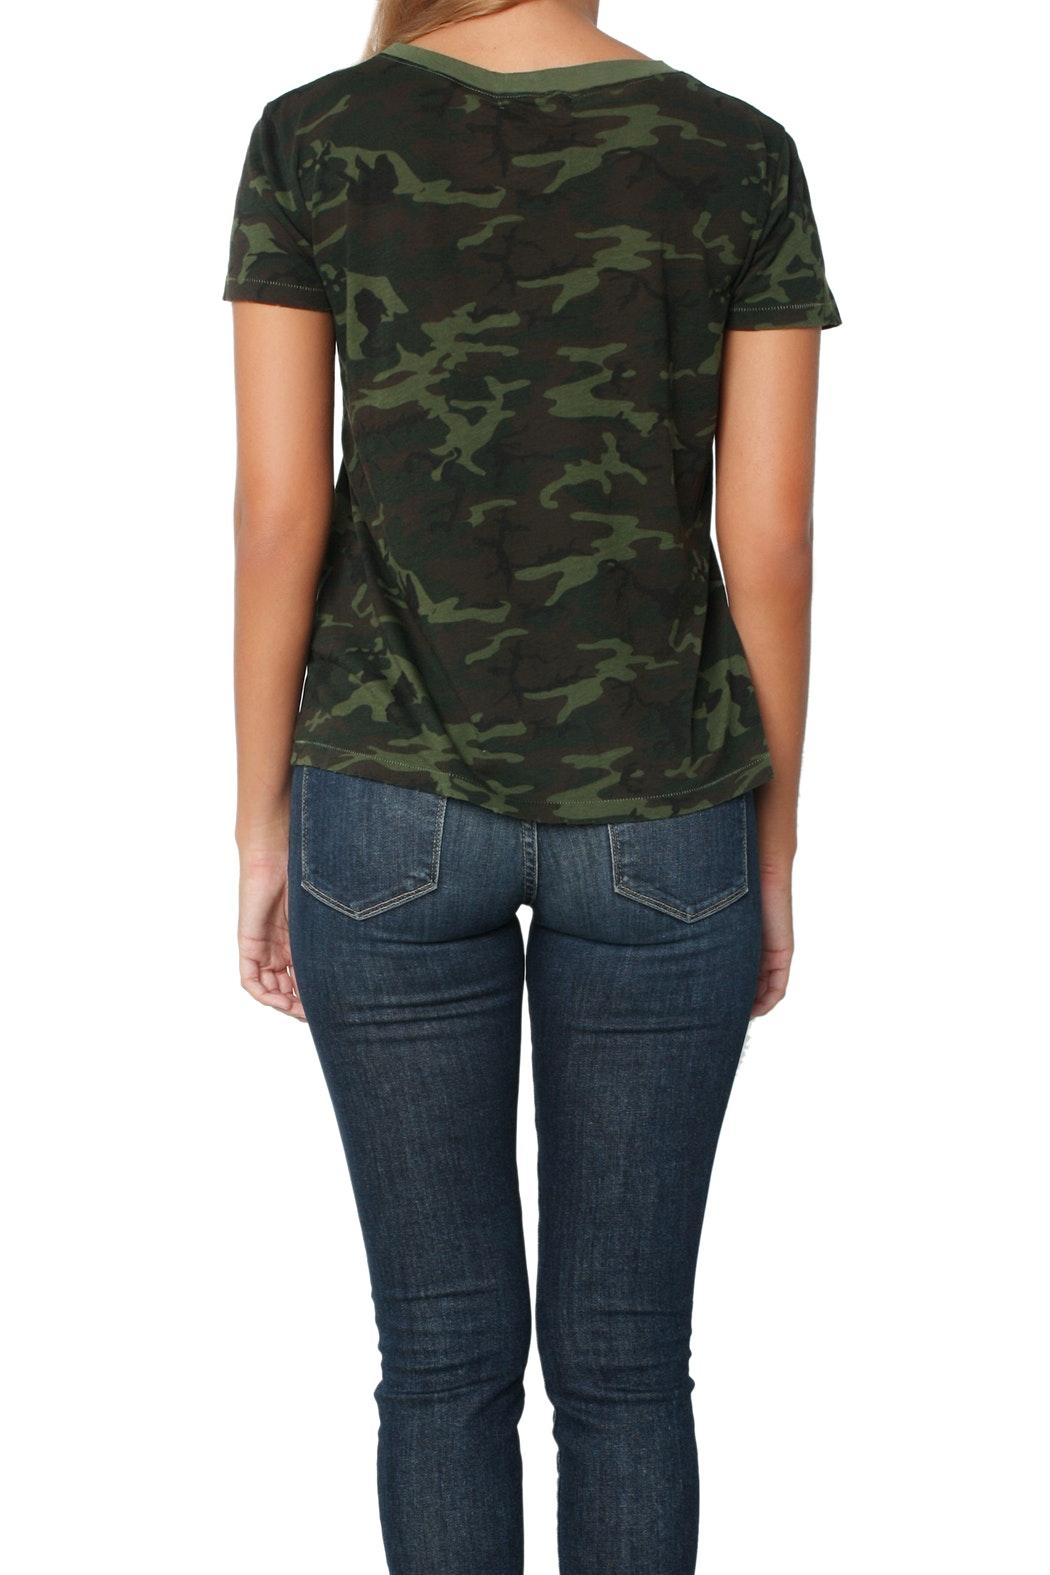 n:PHILANTHROPY Harlow Tee Camo Moss - Back Cropped Image